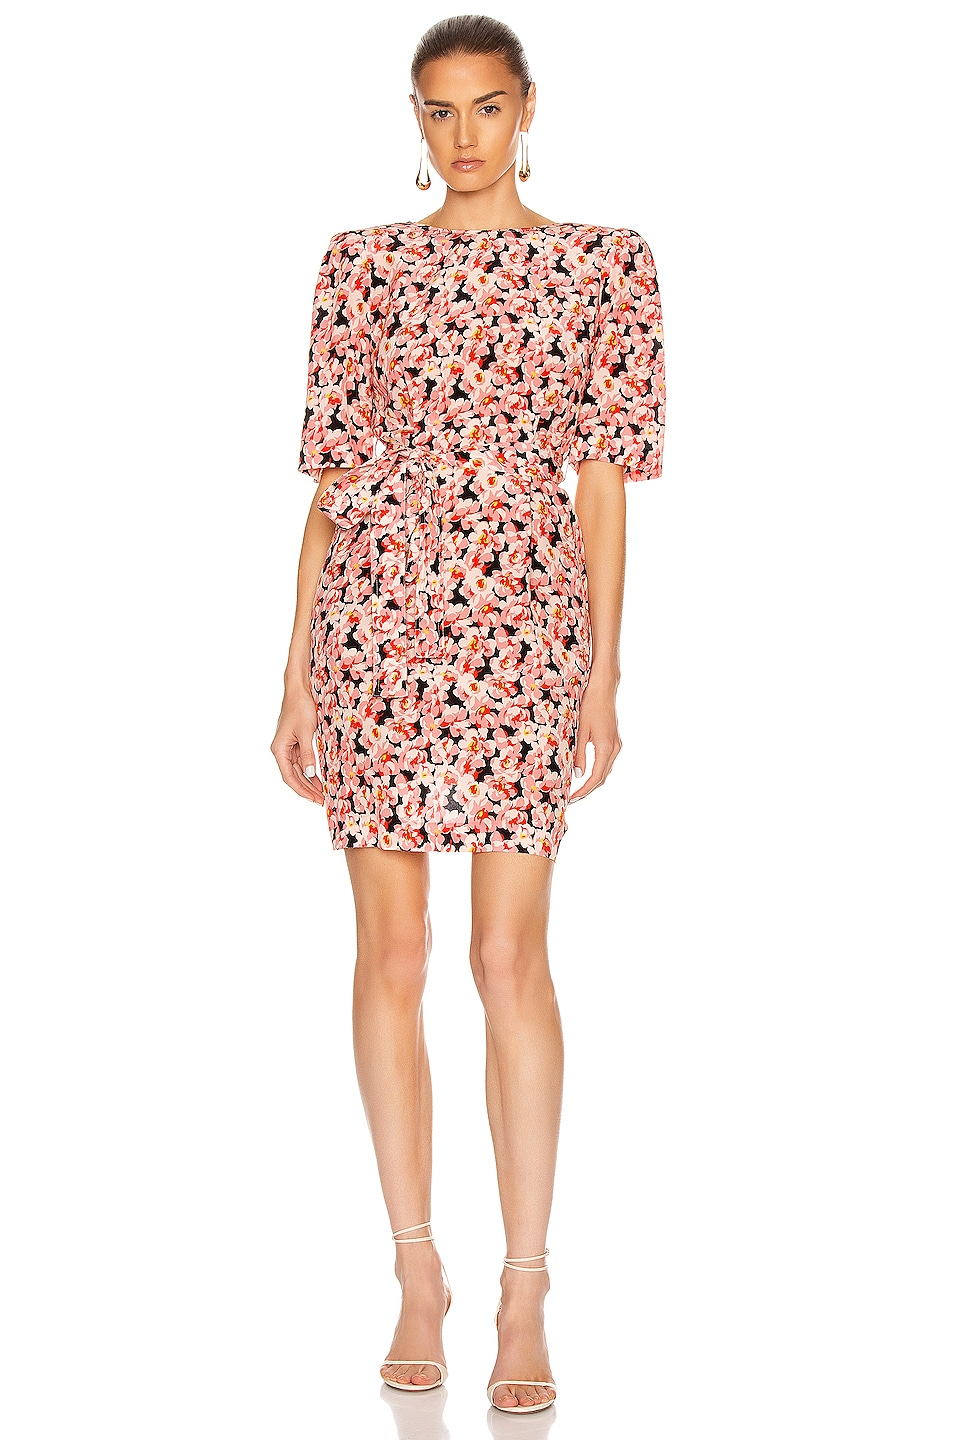 Image 1 of Stella McCartney Blossom Dress in Multicolor Pink